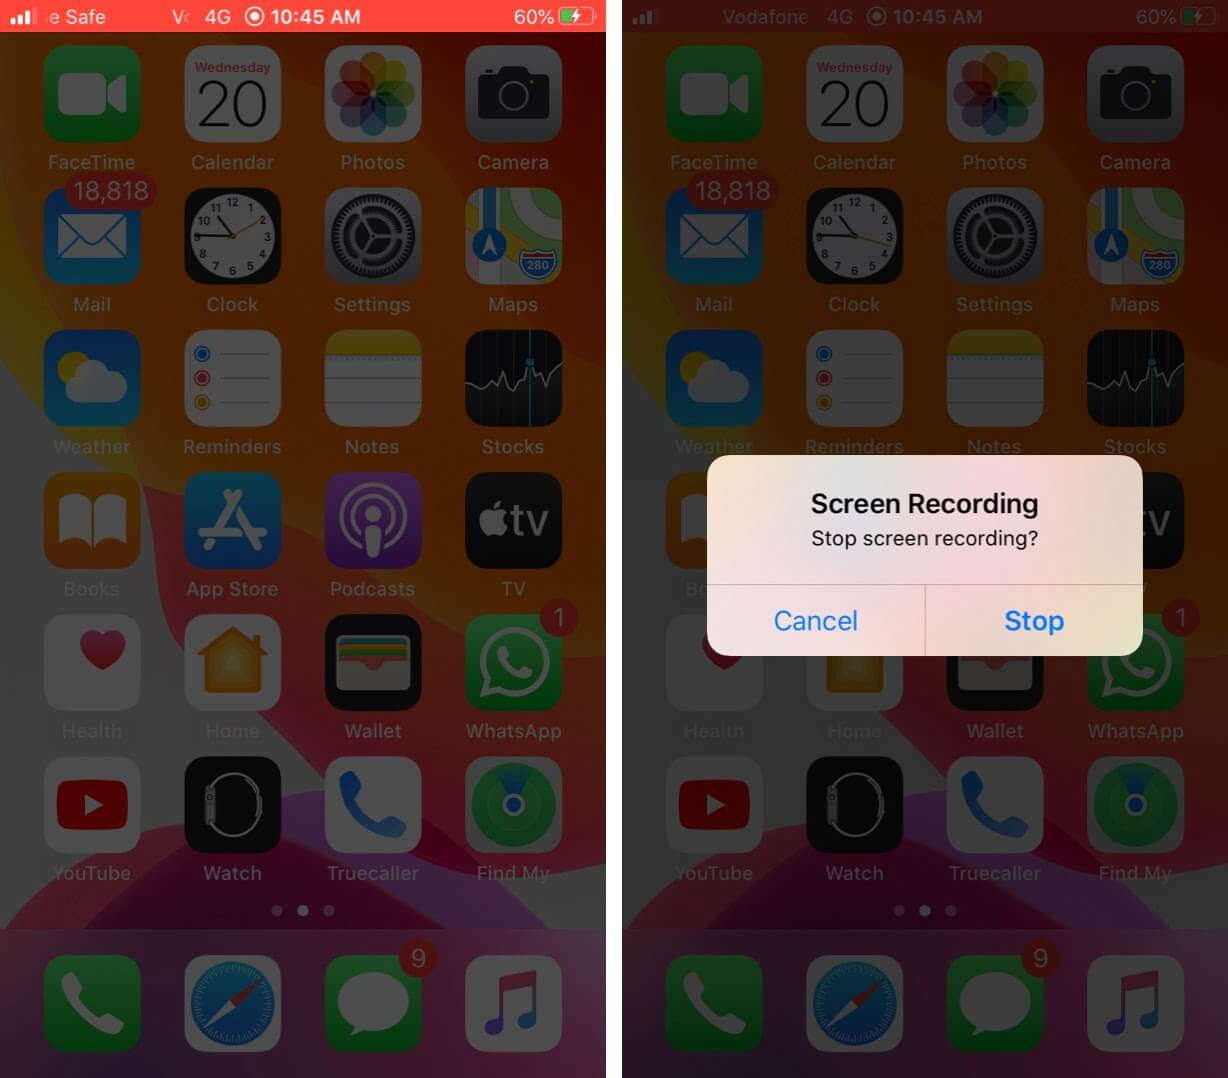 Stop Screen Recording on iPhone